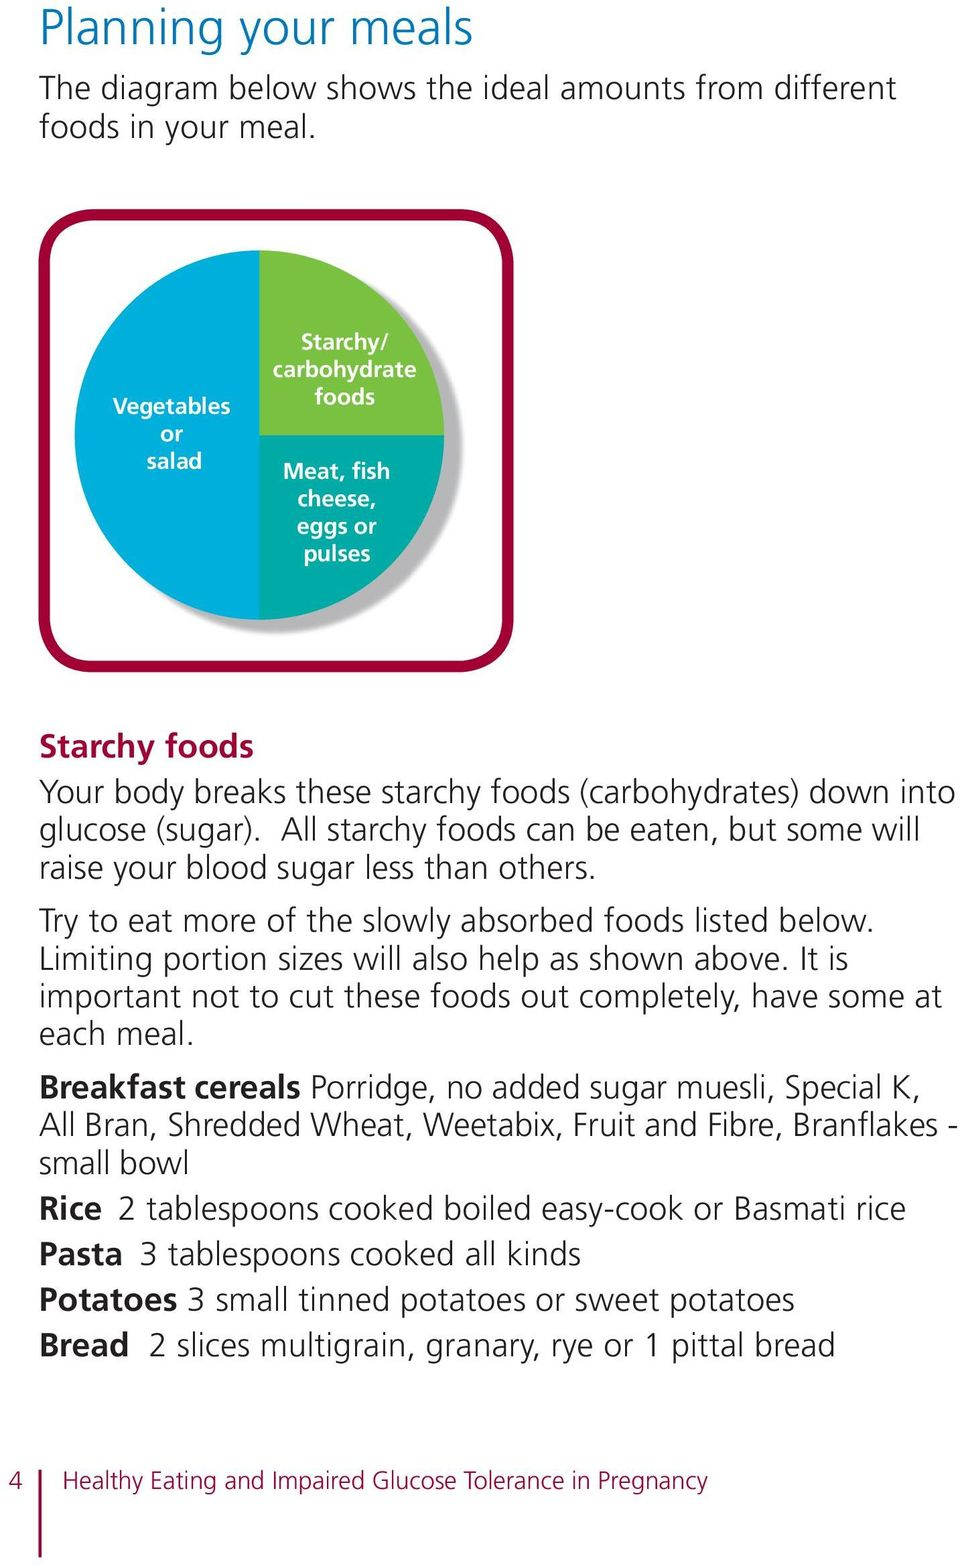 All starchy foods can be eaten, but some will raise your blood sugar less than others. Try to eat more of the slowly absorbed foods listed below. Limiting portion sizes will also help as shown above.